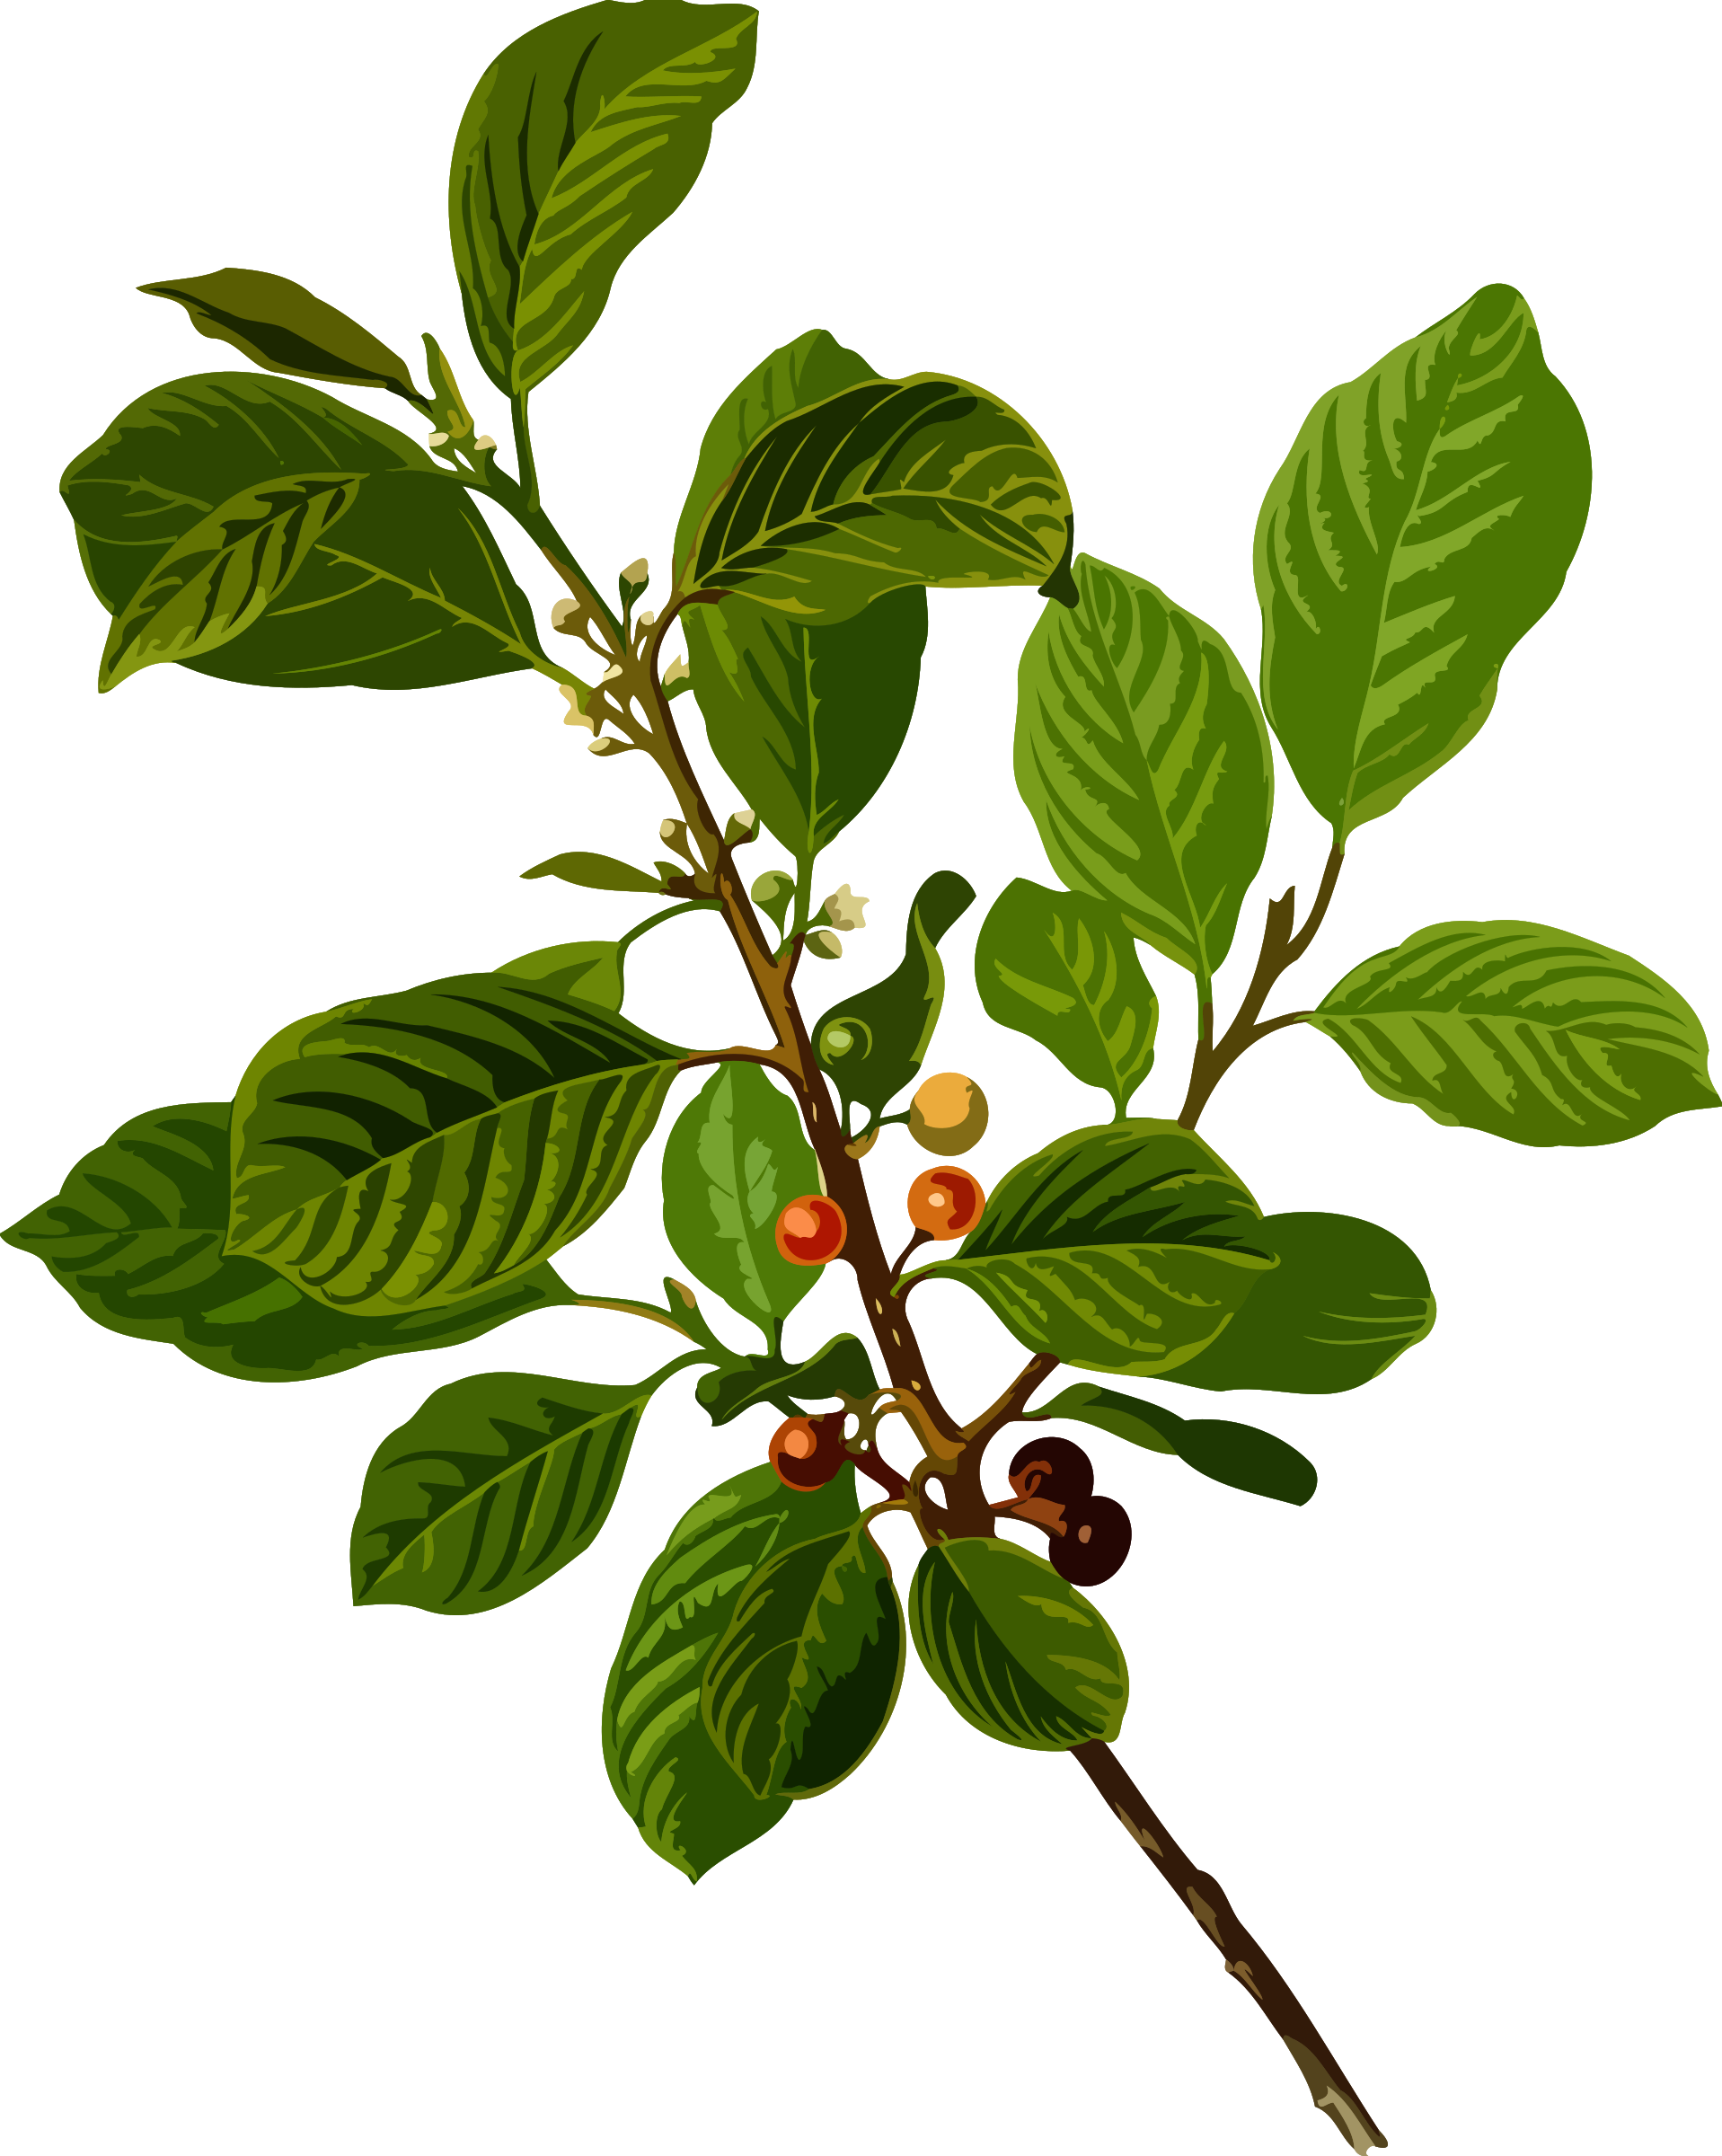 Alder buckthorn (low resolution) by Firkin